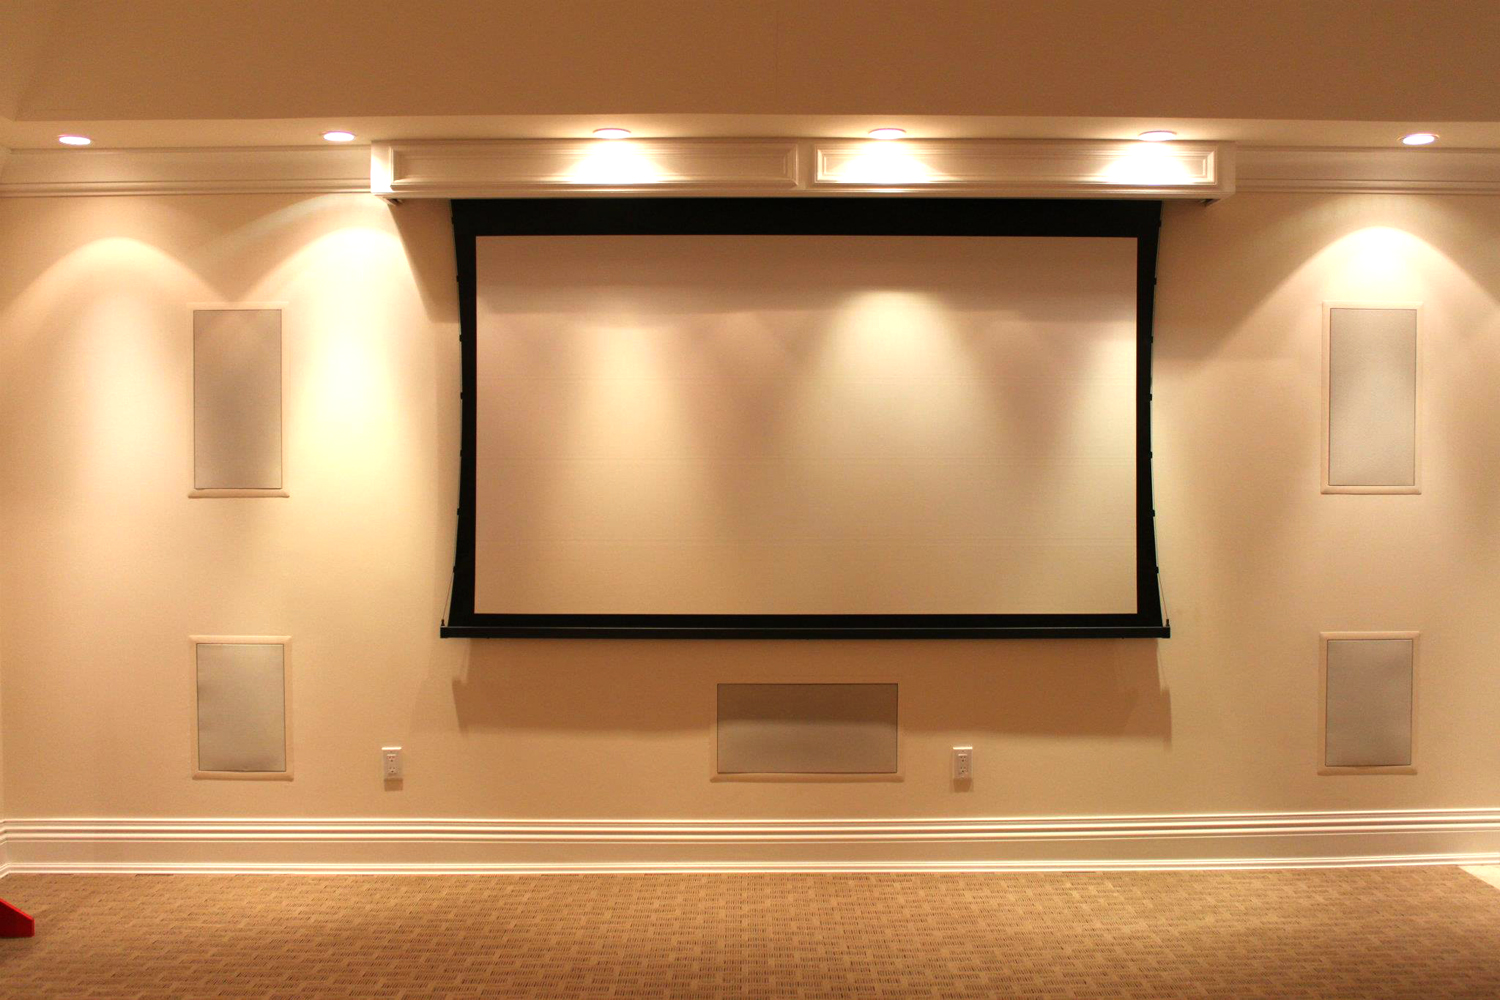 Projection Screen - Home Theater Room